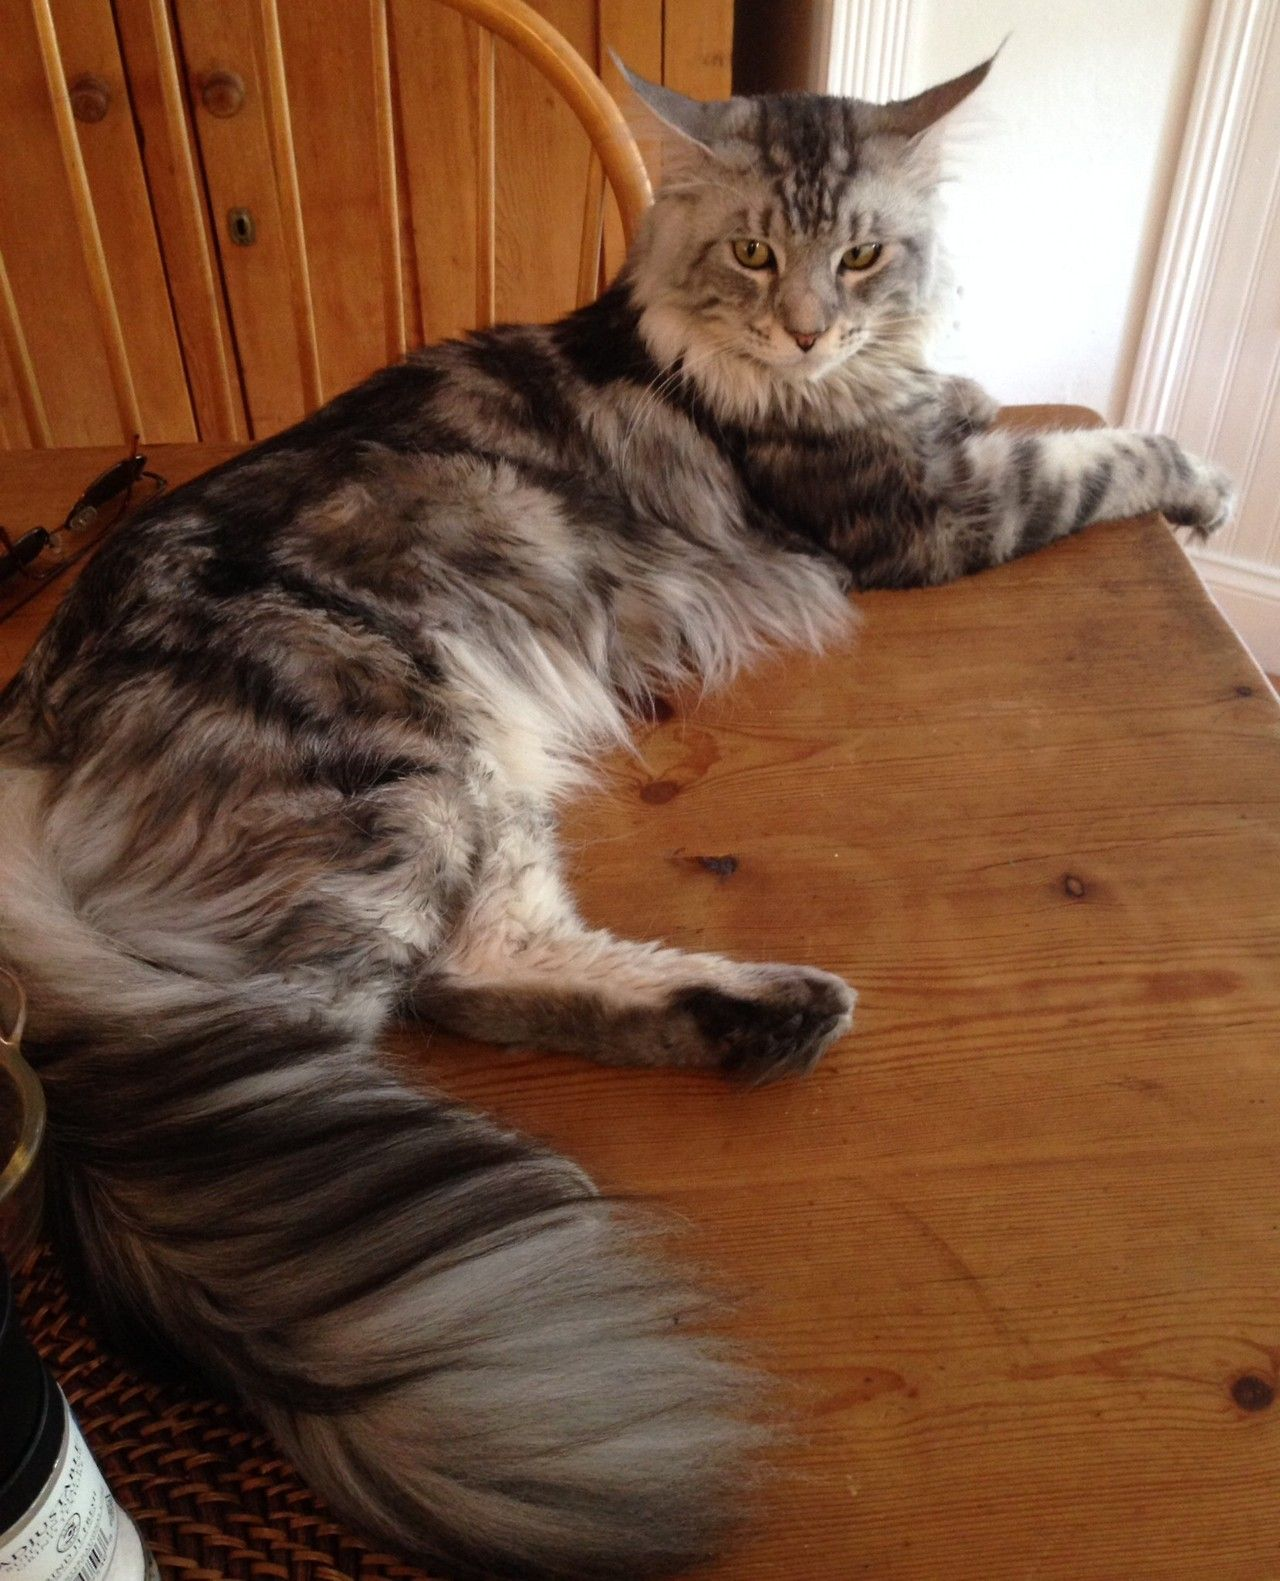 mostlycatsmostly:  Hi! This is my mom's silver striped Maine Coon, Sonny. (submitted by Crafts and Cats)